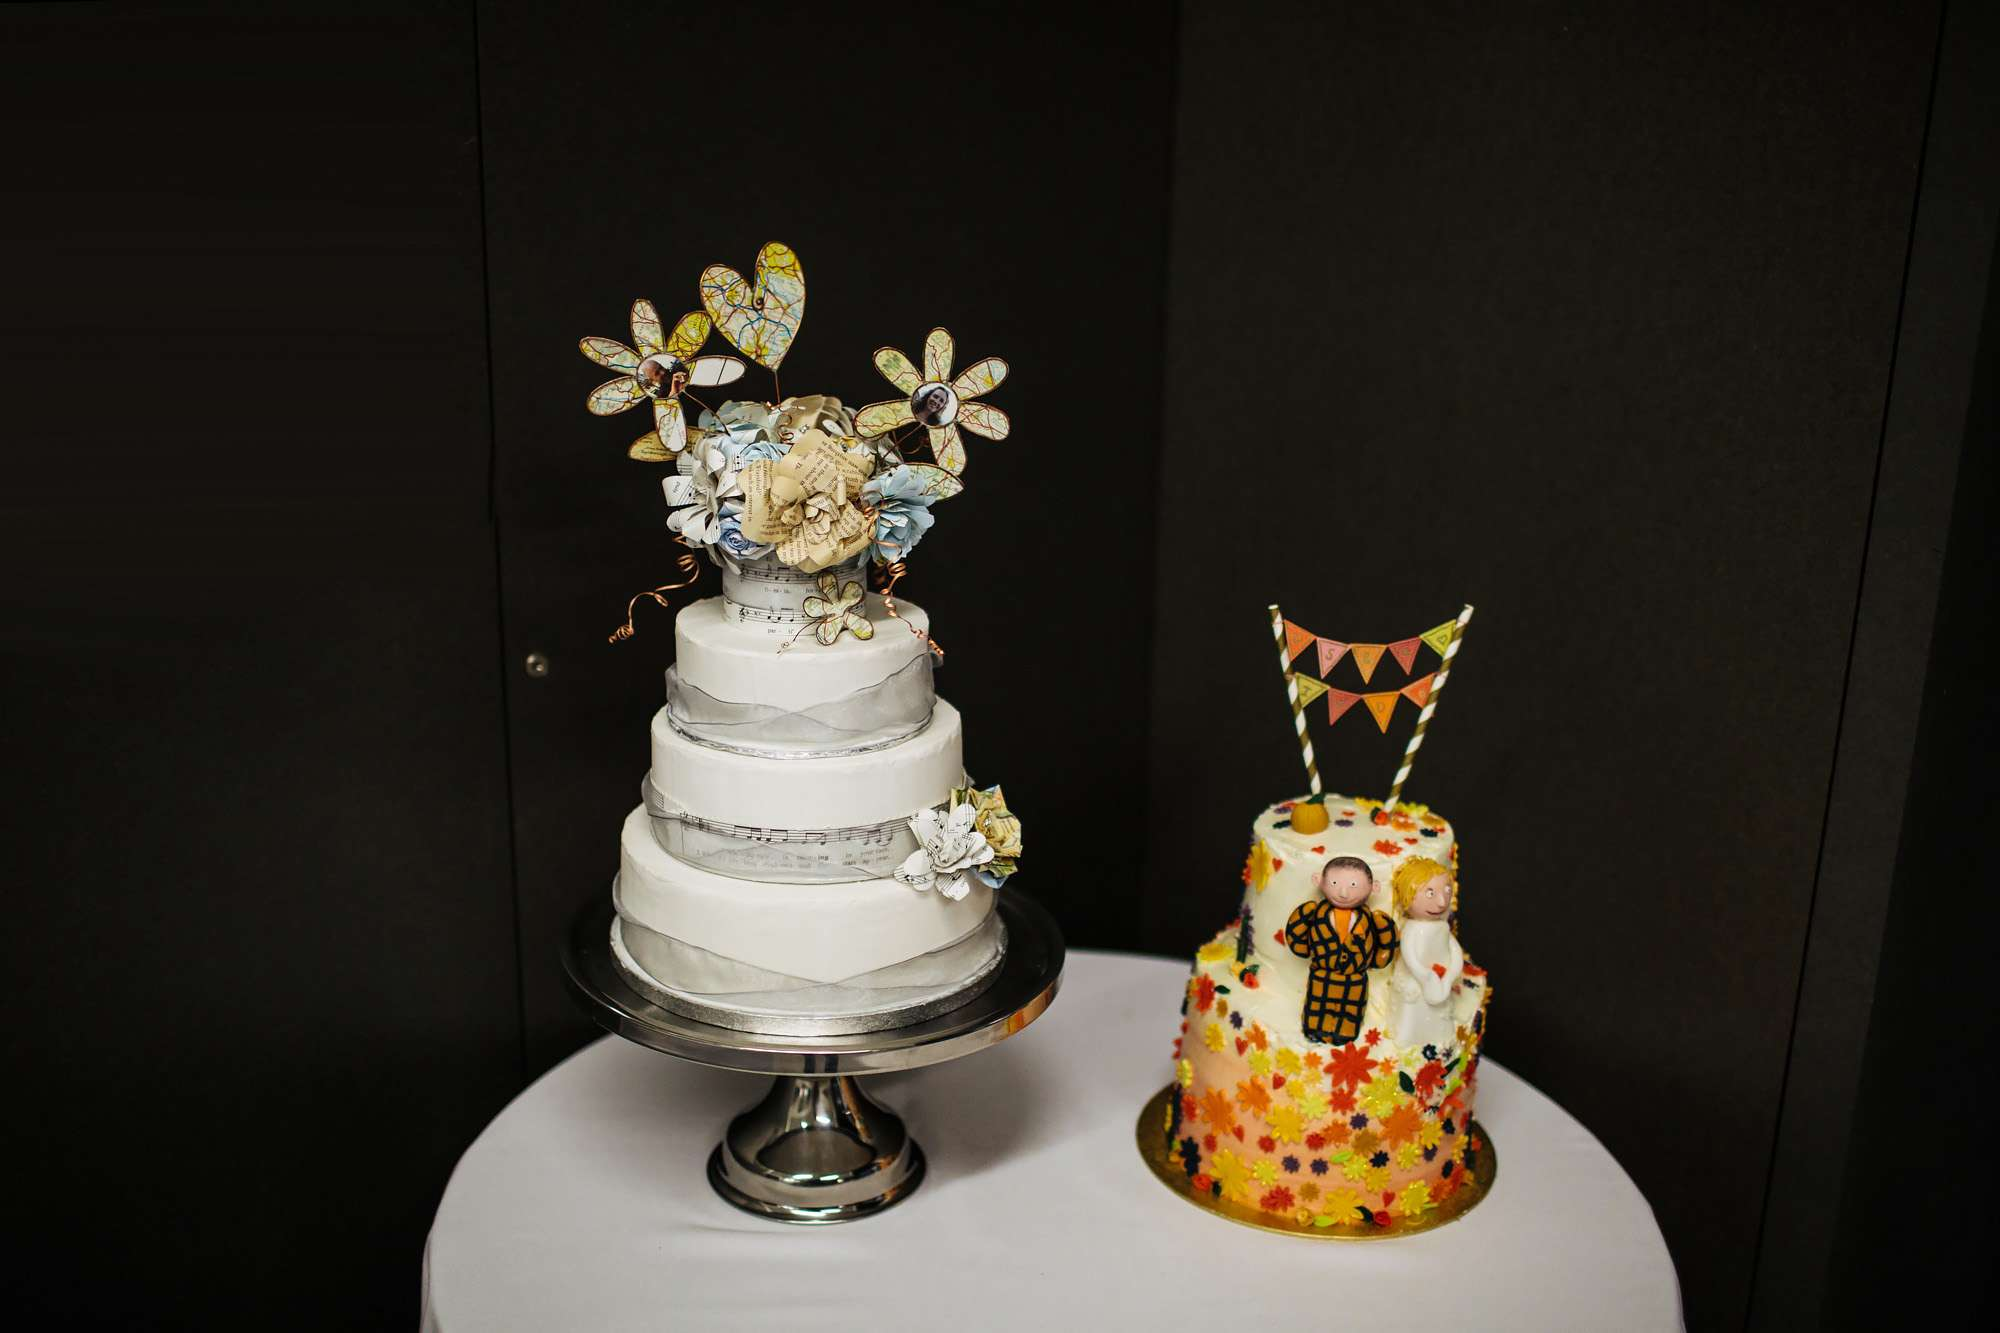 Beautifully decorated wedding cakes at Hepworth Art Gallery